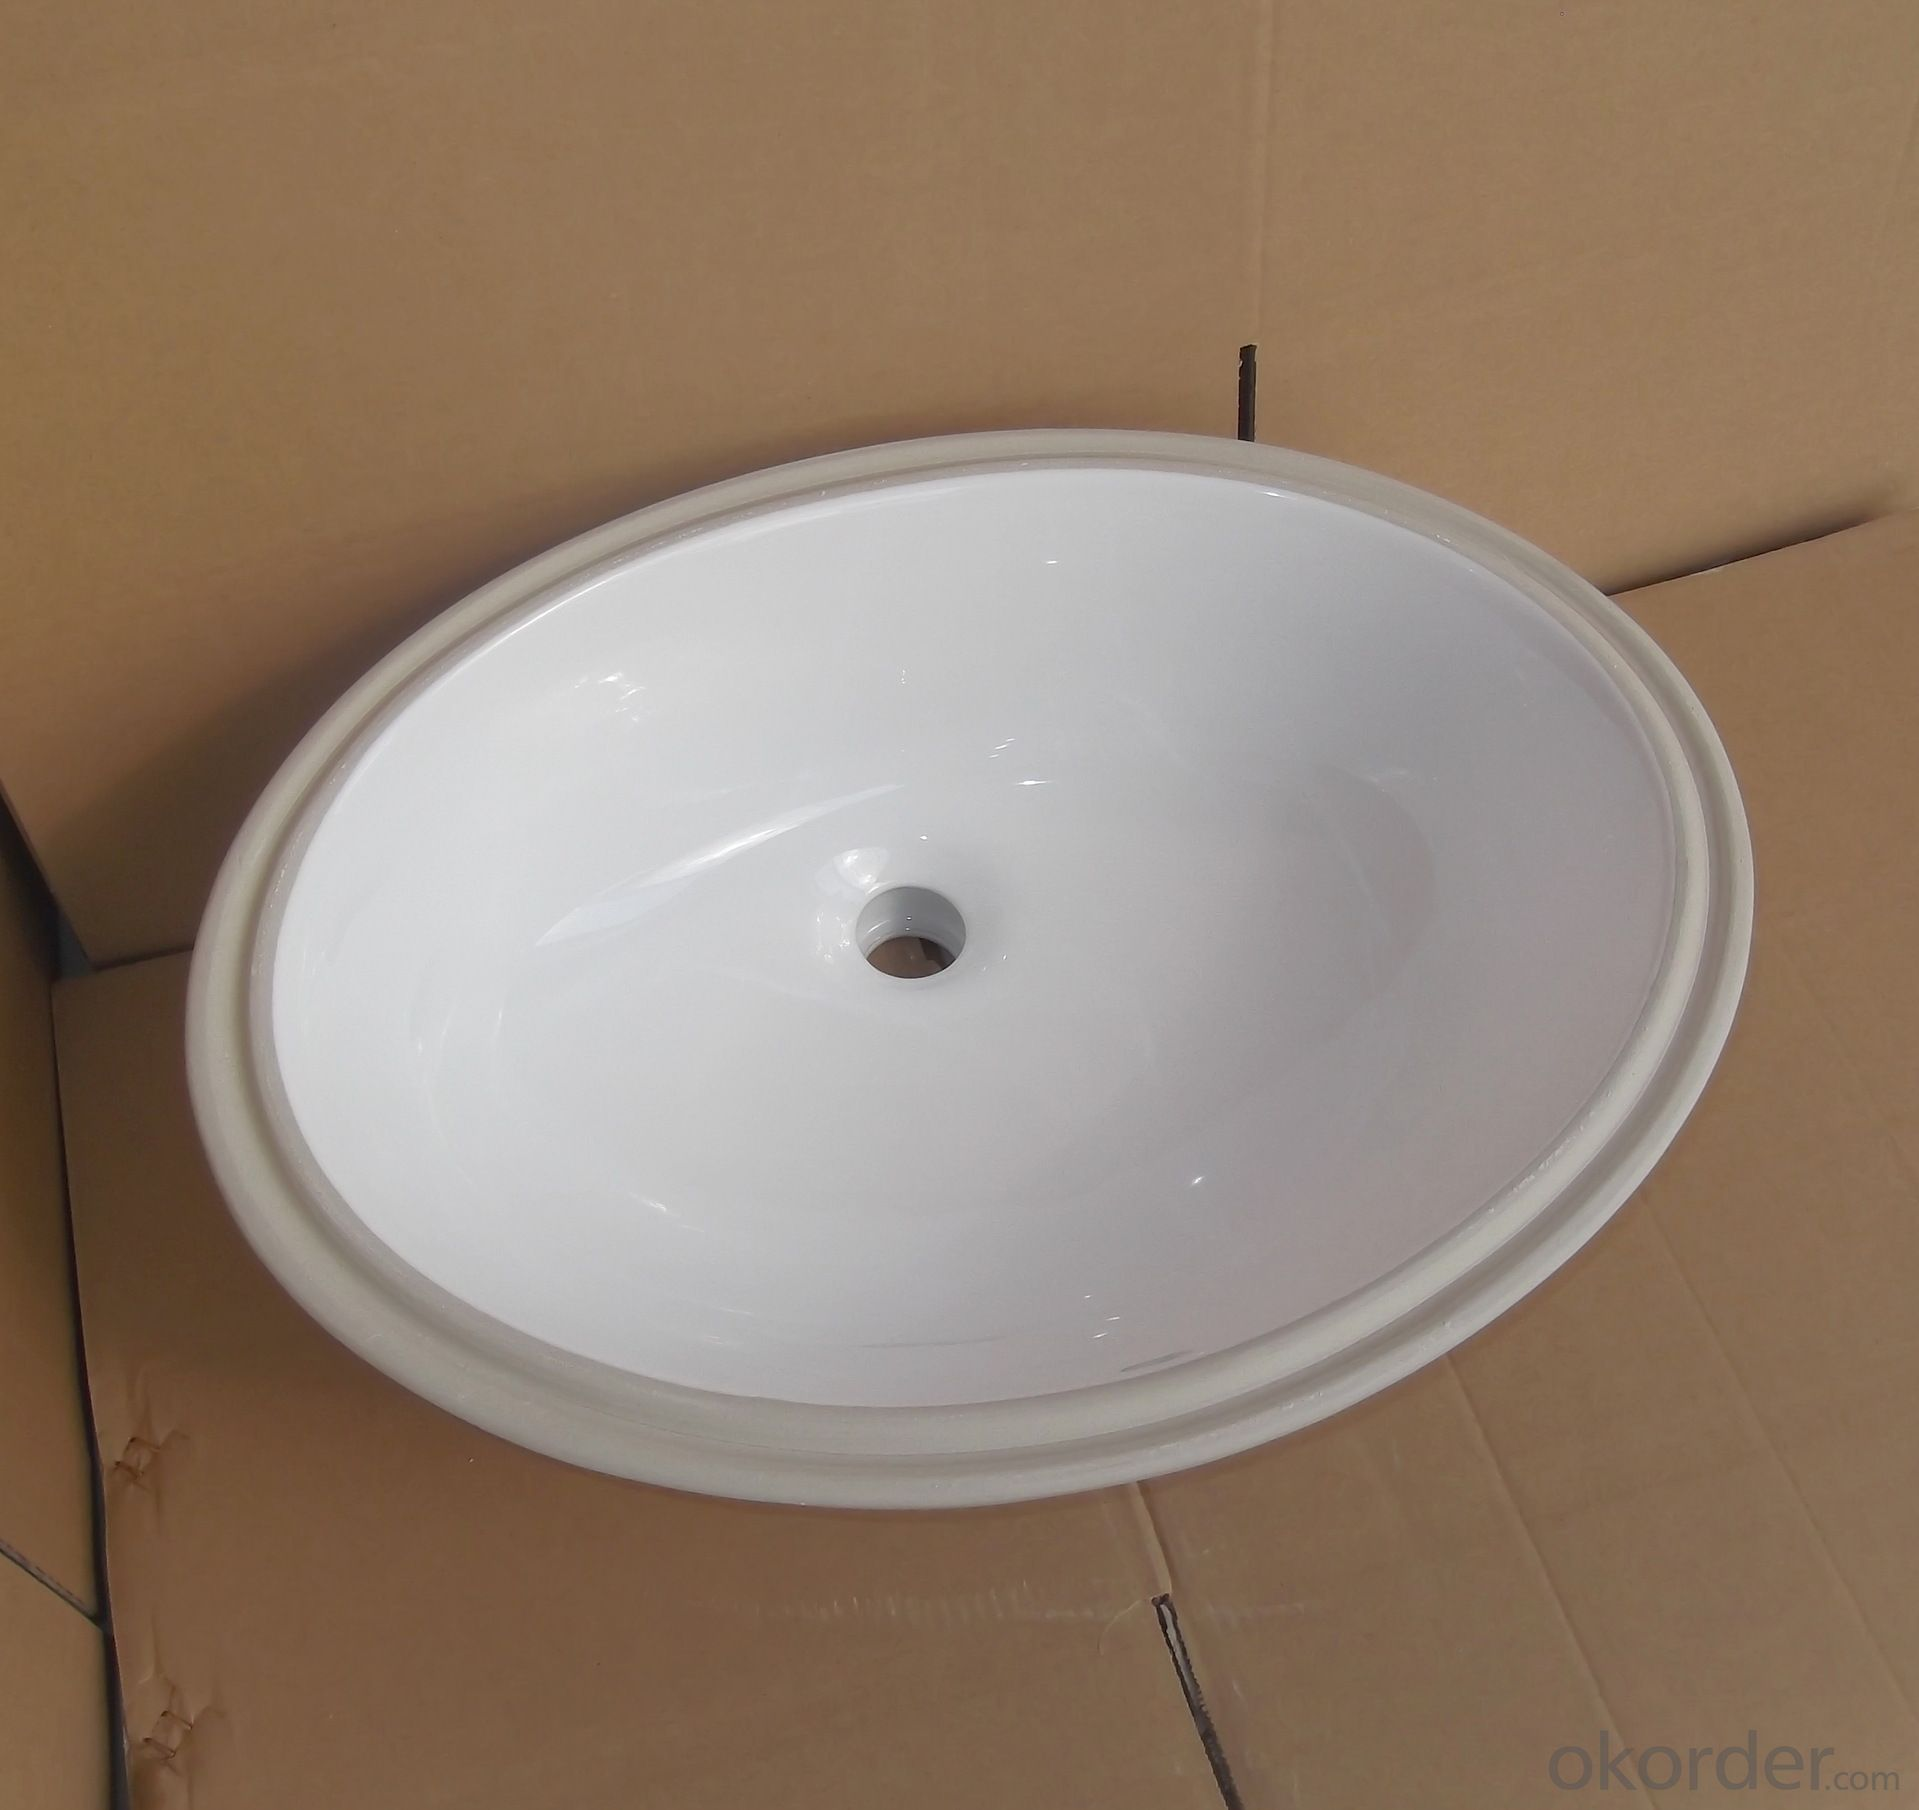 Grooved undercounter 22-inch basin